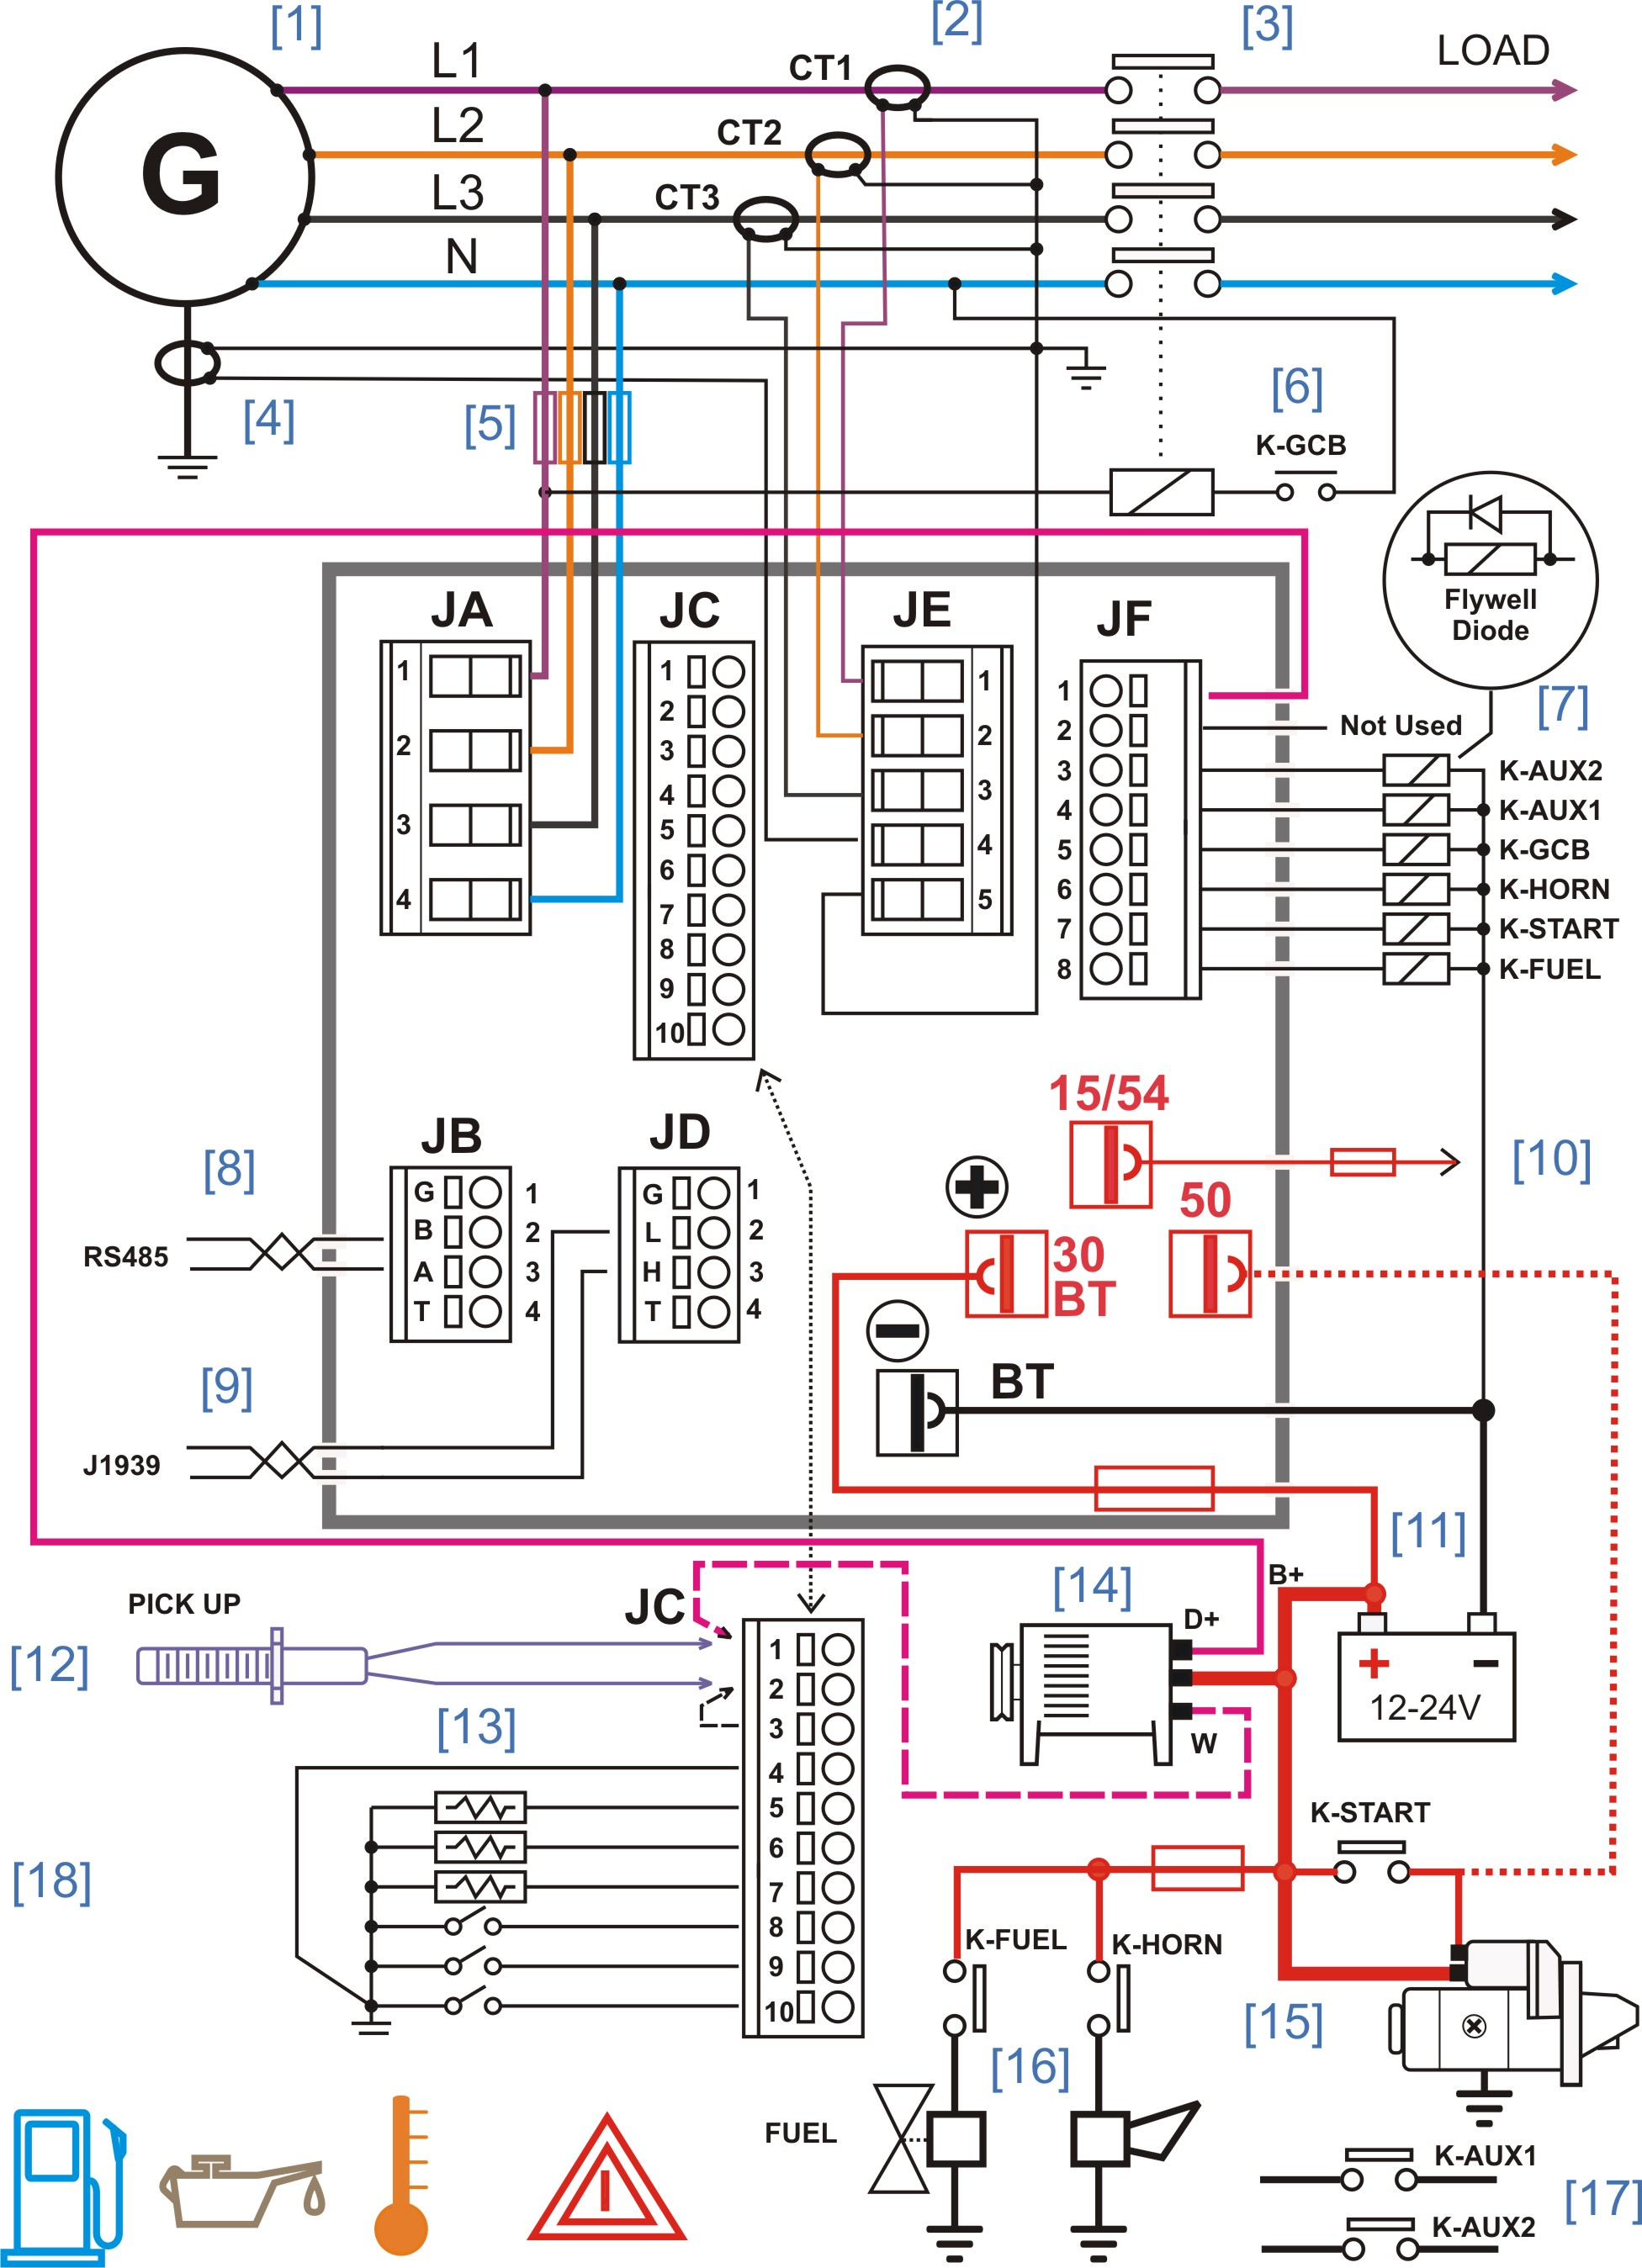 Wiring Diagram For Aprilaire 700: Wiring Diagram For Aprilaire 700 On Wiring Images. free download ,Design